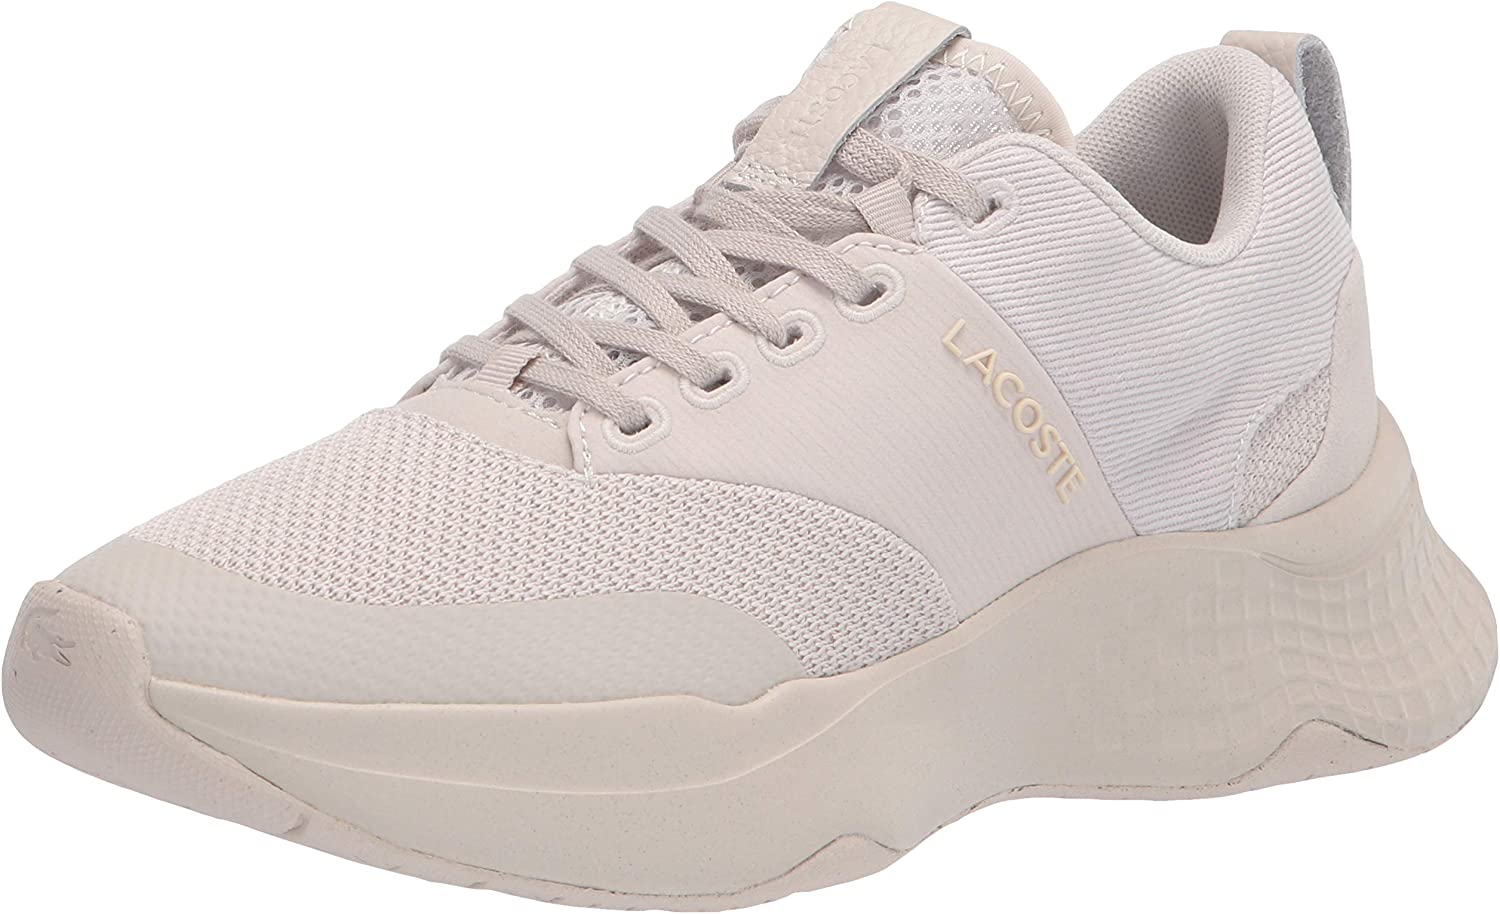 Lacoste New Orleans Mall Women's Sale Special Price Court-Drive Sneaker Plus